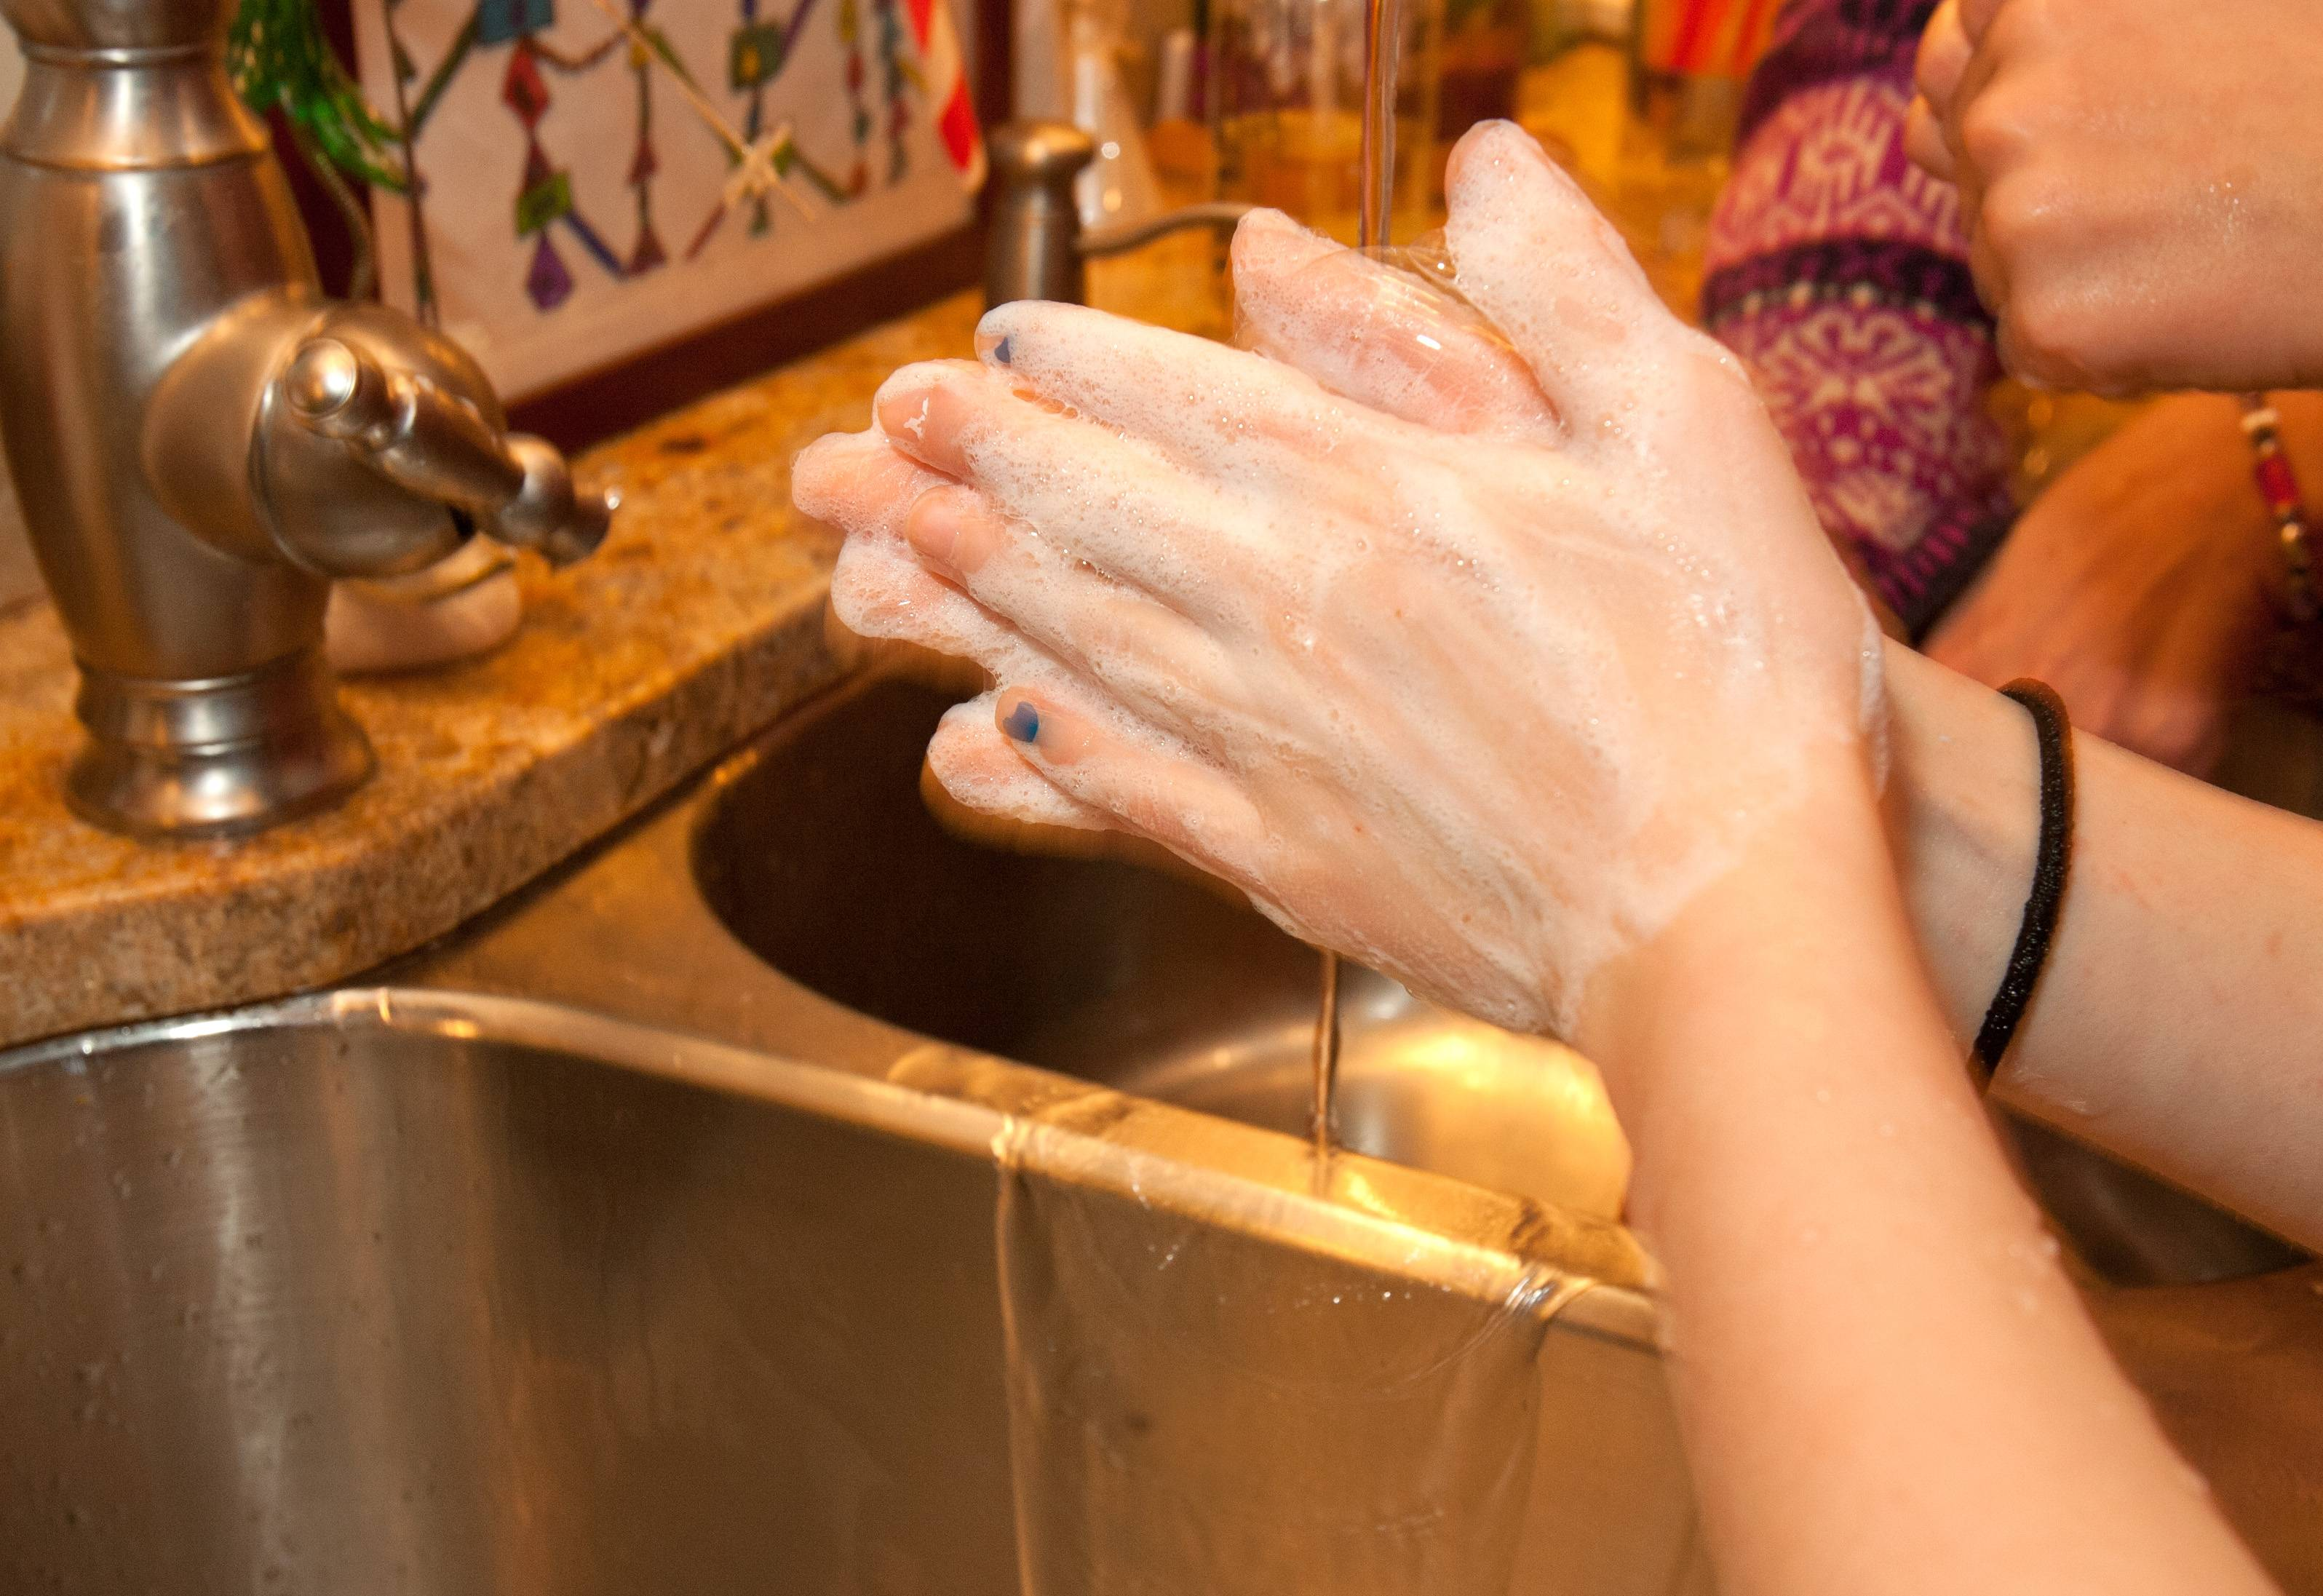 Washing hands, and keeping them under running water for 20 seconds, is a good way to sweep the germs away.